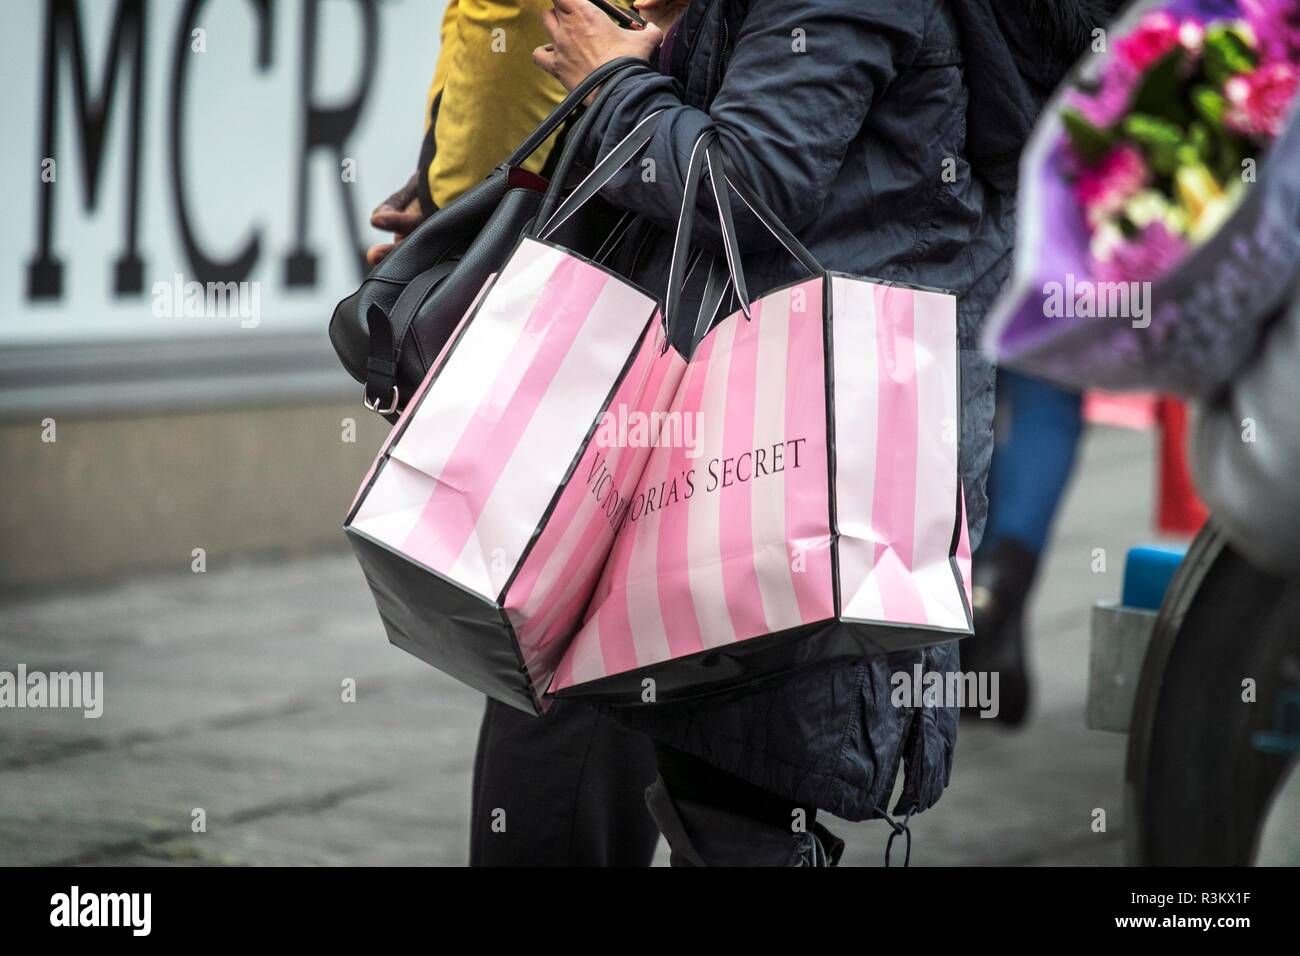 9372a1da5e9 Black Friday Sales. 23rd November 2018. woman shopper flock to VICTORIA S  SECRET stores to bag high street bargains on one of the biggest shopping  days of ...